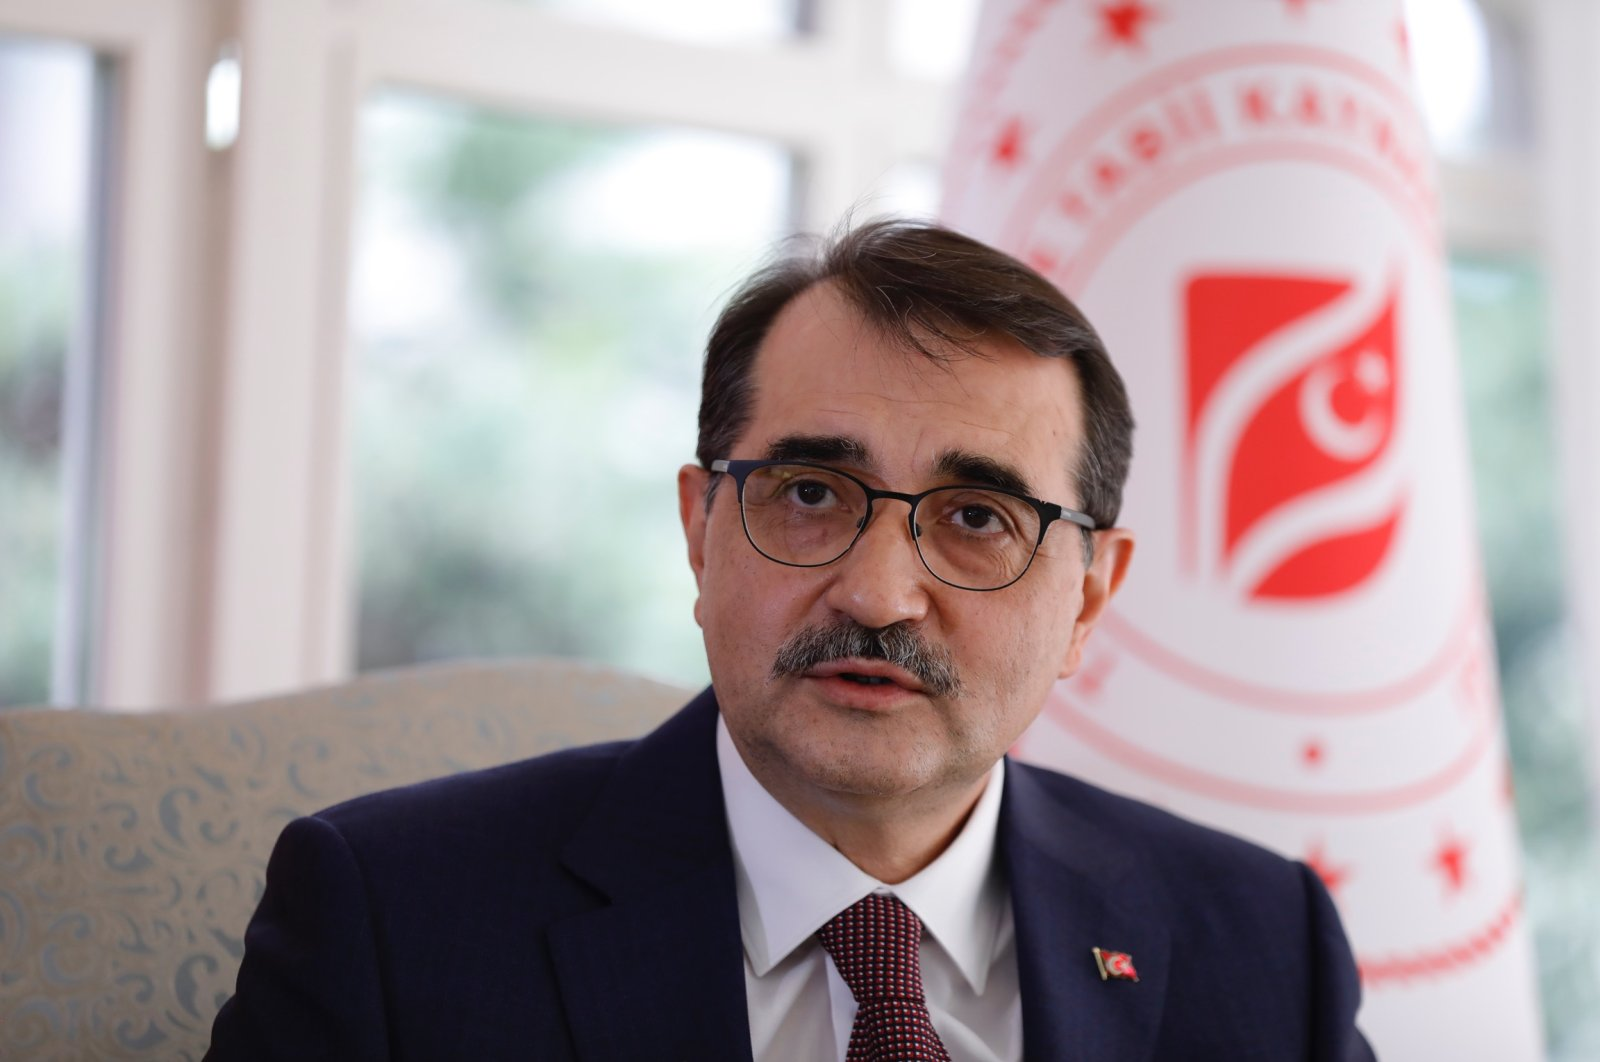 Energy and Natural Resources Minister Fatih Dönmez. (DHA Photo)